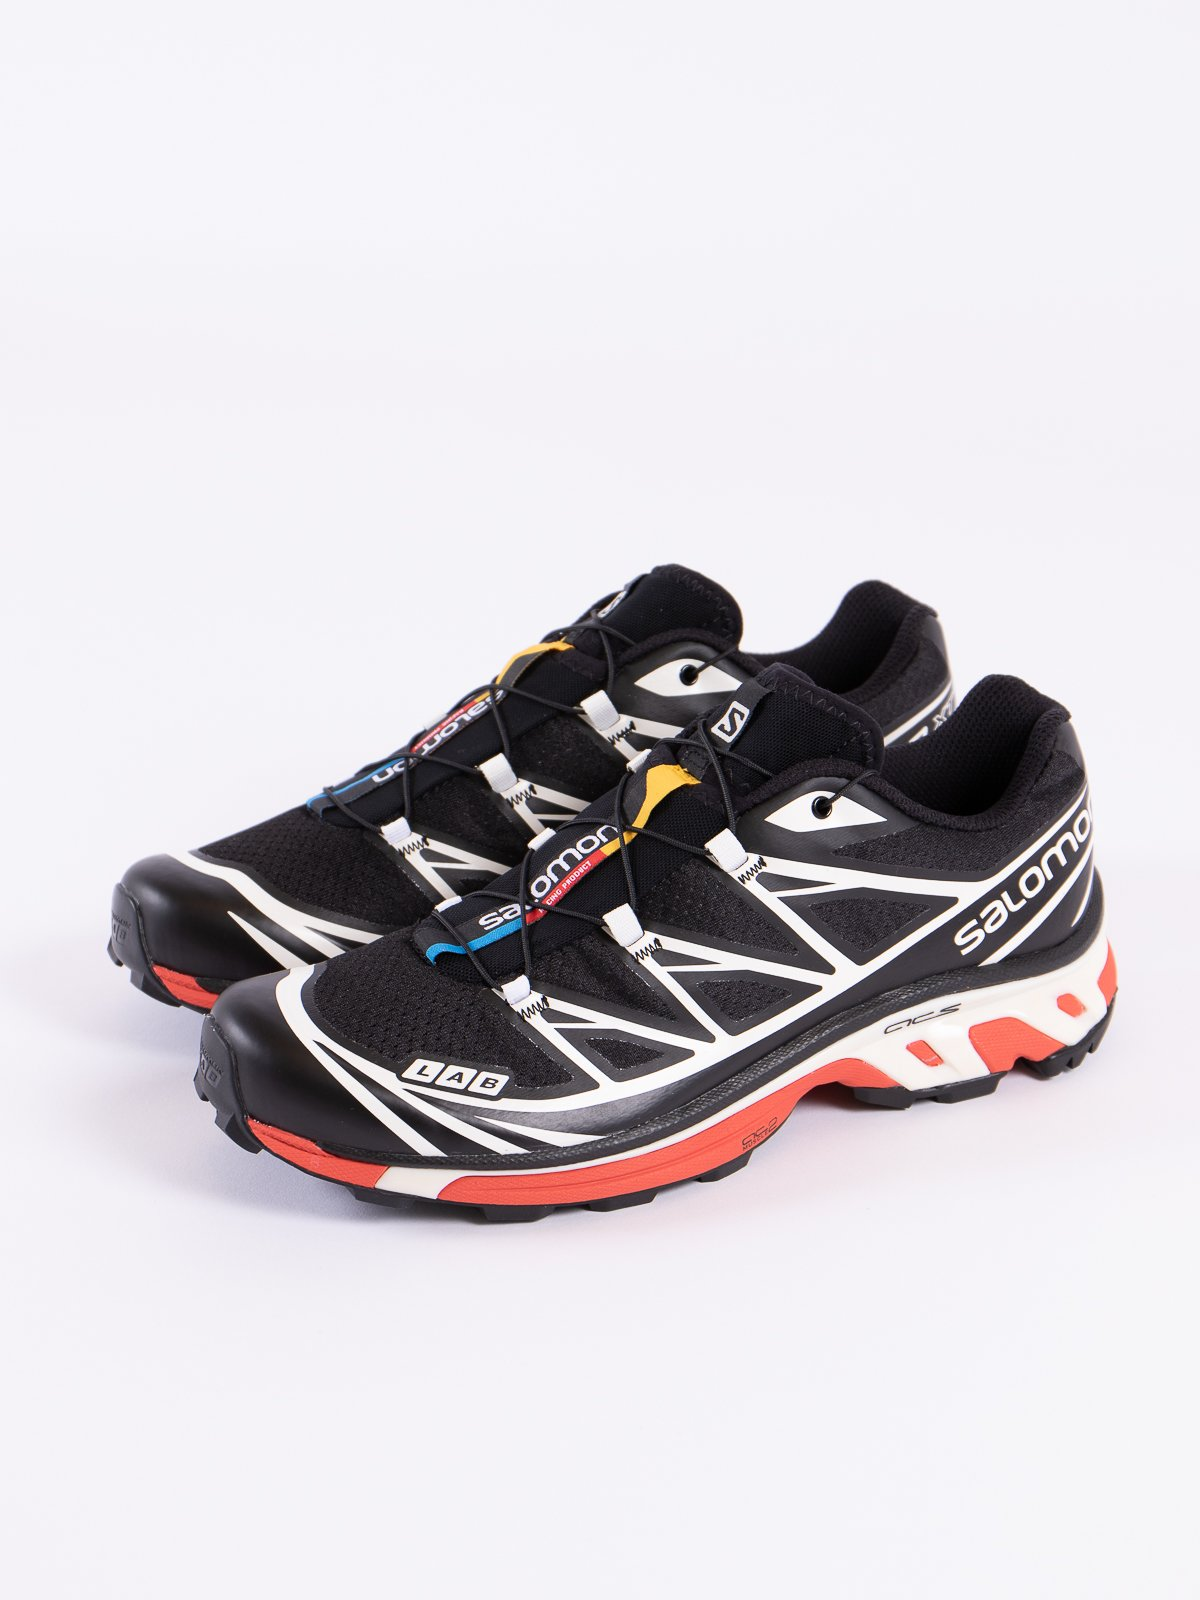 BLACK/VANILLA/RACING RED XT–6 SOFTGROUND LT ADV - Image 2